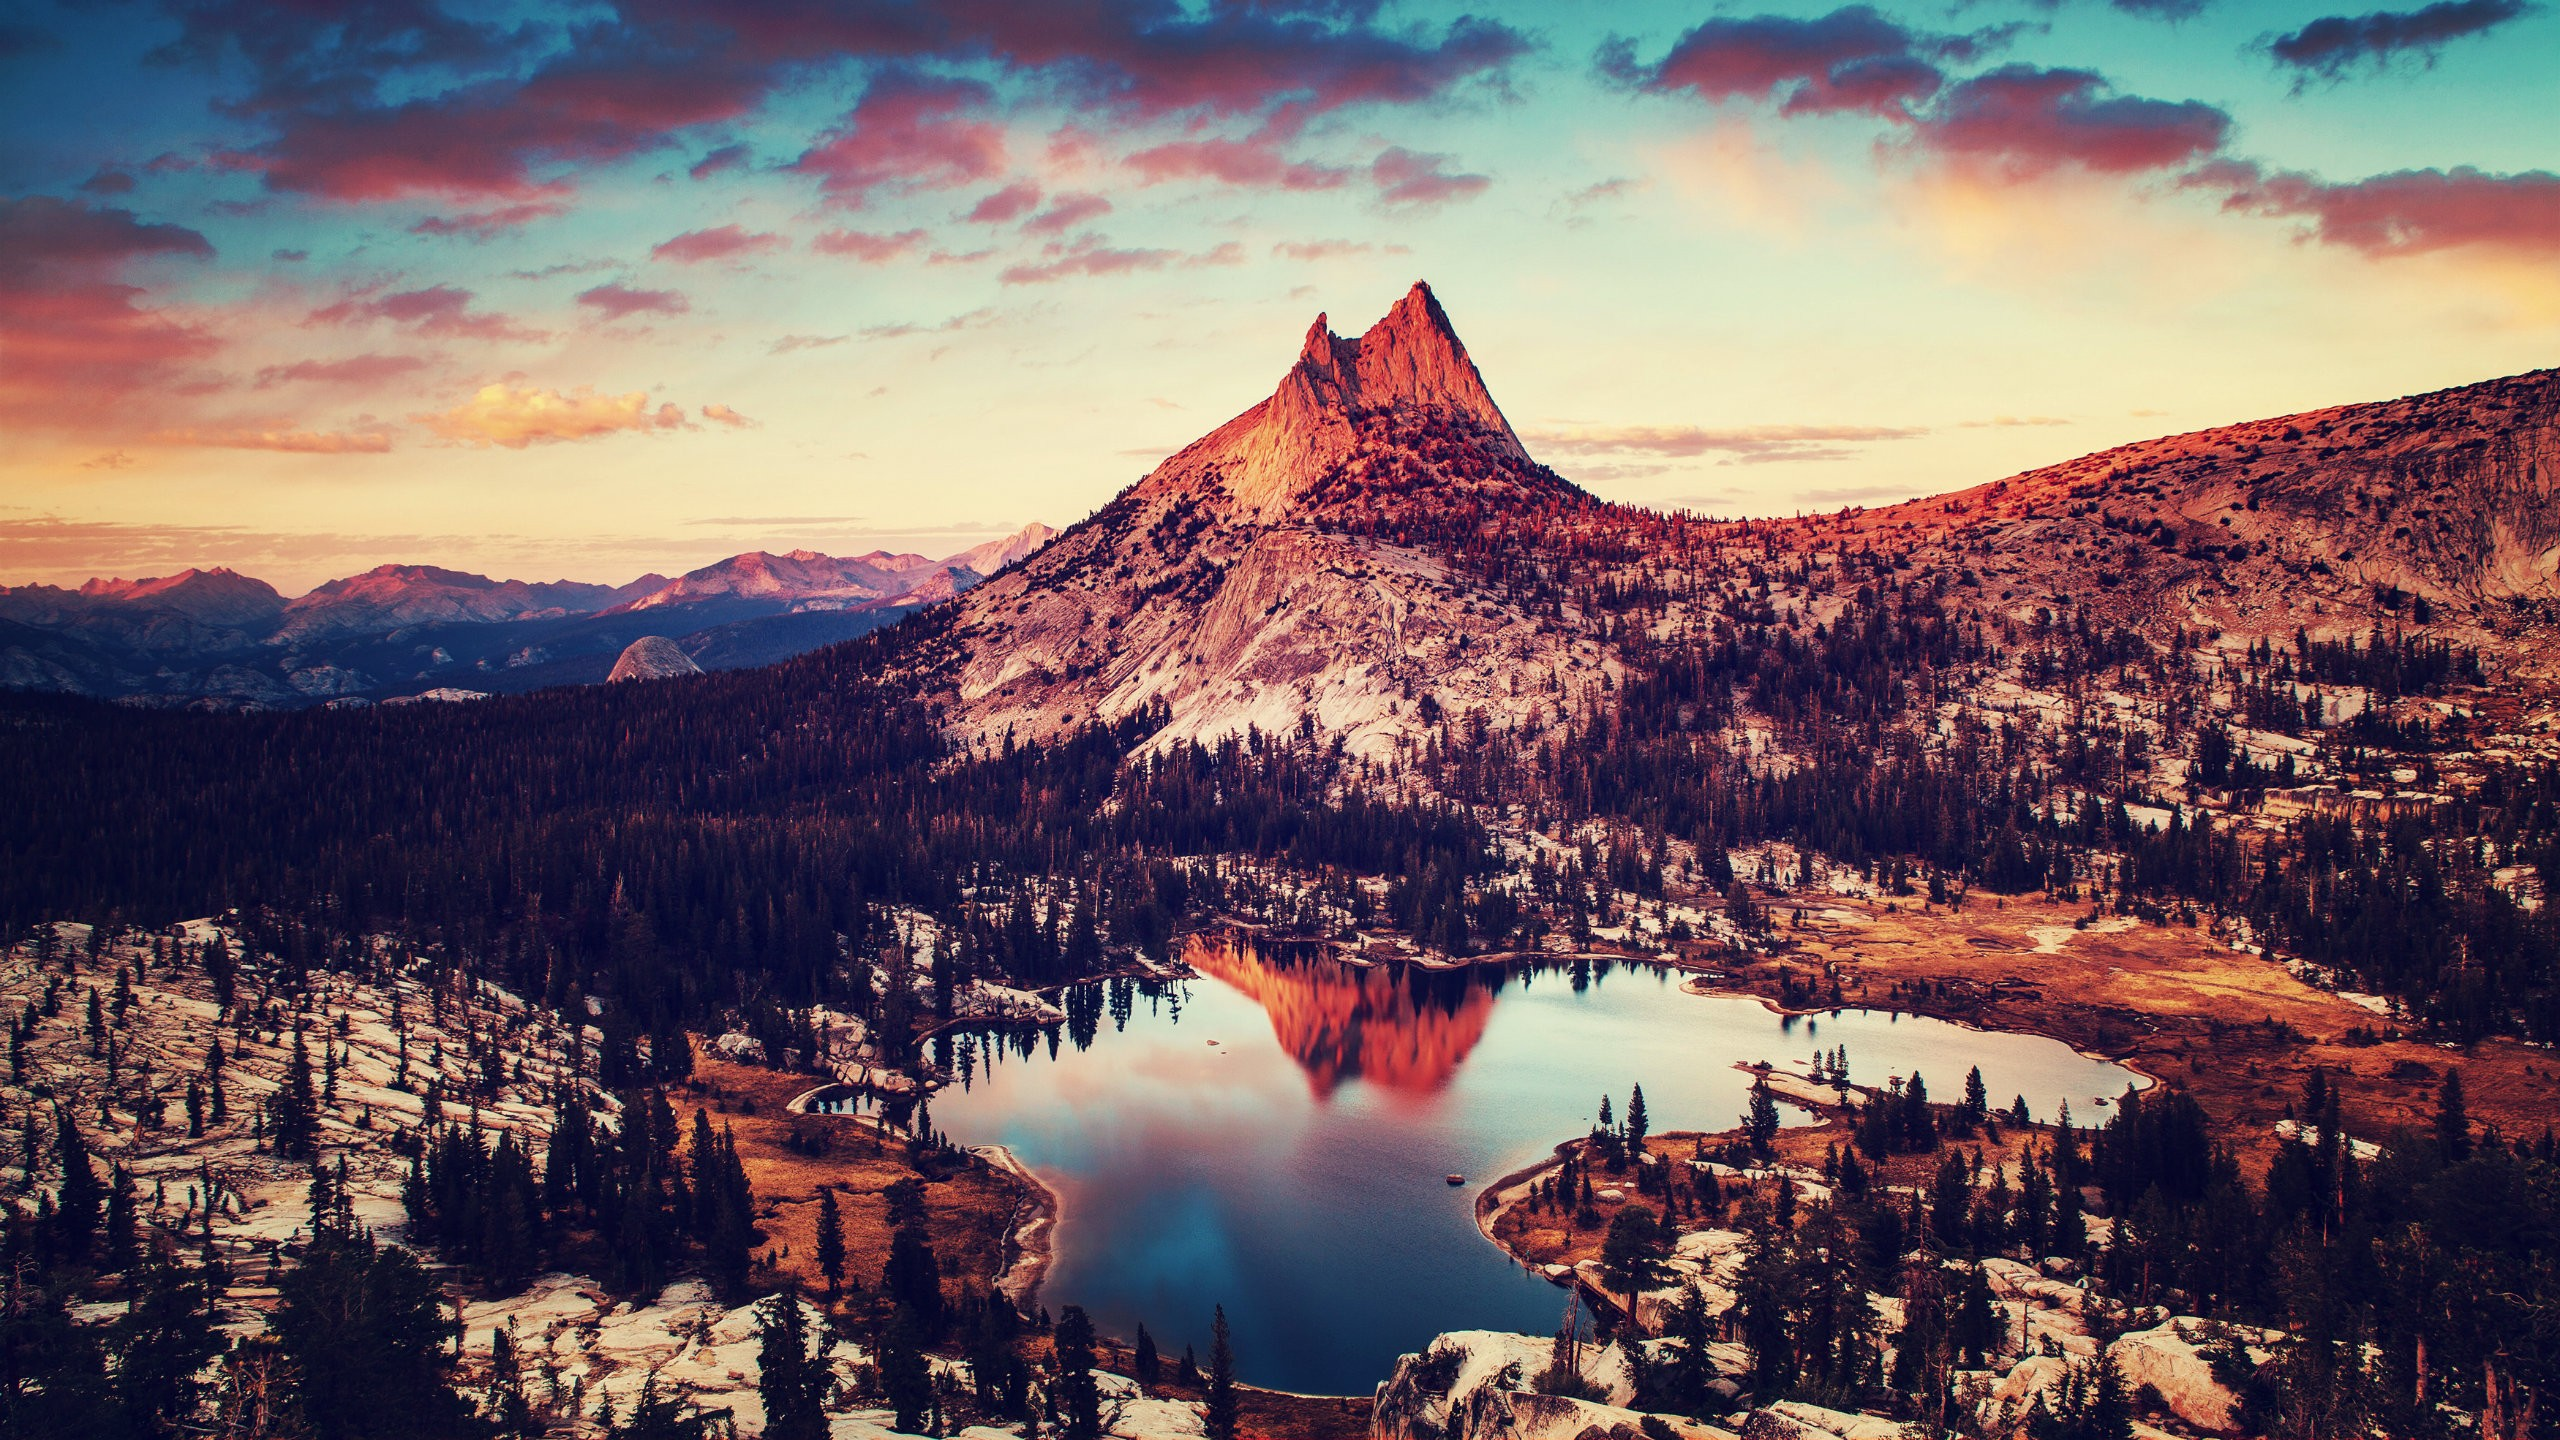 40 yosemite national park hd wallpapers backgrounds - Yosemite national park hd wallpaper ...